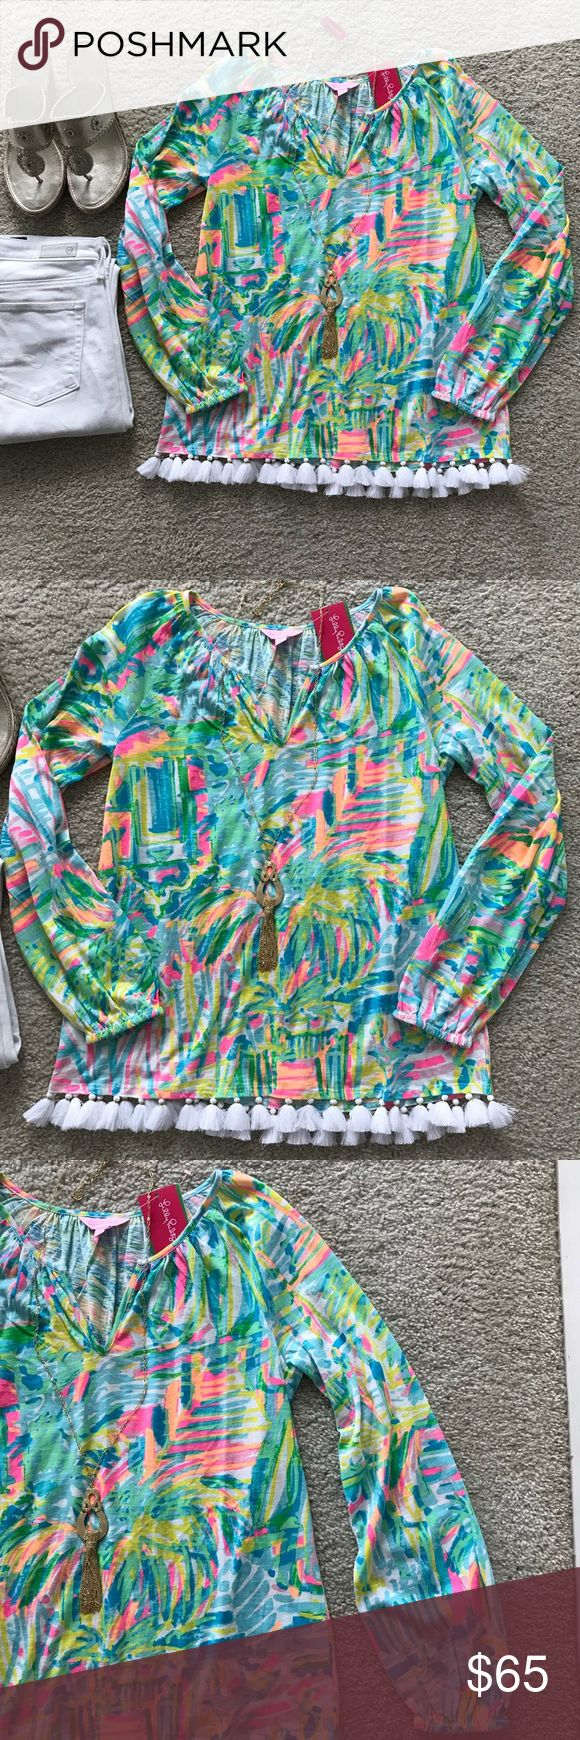 "Lilly Pulitzer Linzy Top Lilly Pulitzer Linzy Top in Sea, Salt & Sun. Gorgeous addition to your Lilly collection. Can be worn casual or dressed up❤️ Draped long sleeves. Tassel detail at the hemline. Notched neckline. Laying flat approx 23"" shoulder to hem, approx 18.5"" pit to pit. 100% cotton. Size XS. NWT. #1289 Lilly Pulitzer Tops"